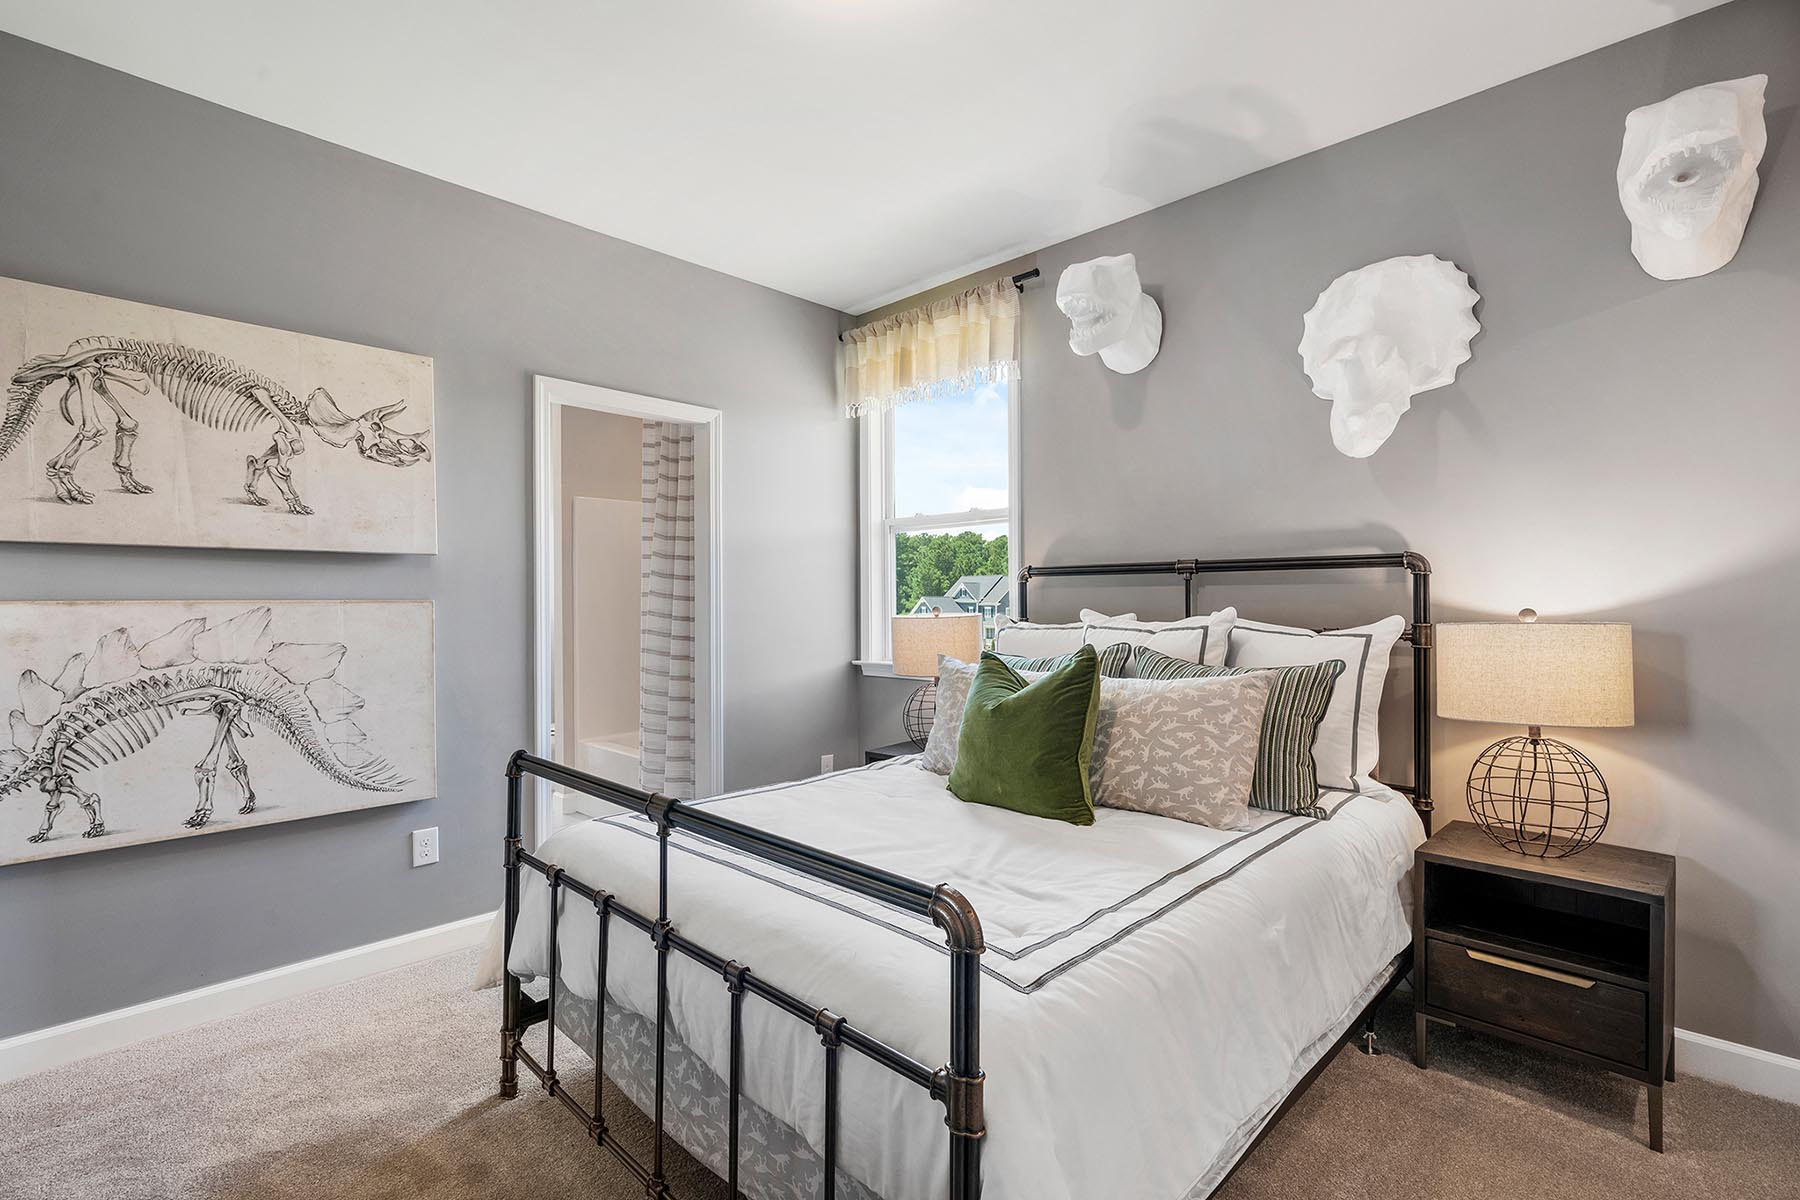 Larkin Plan Bedroom at Fairview Park in Cary North Carolina by Mattamy Homes